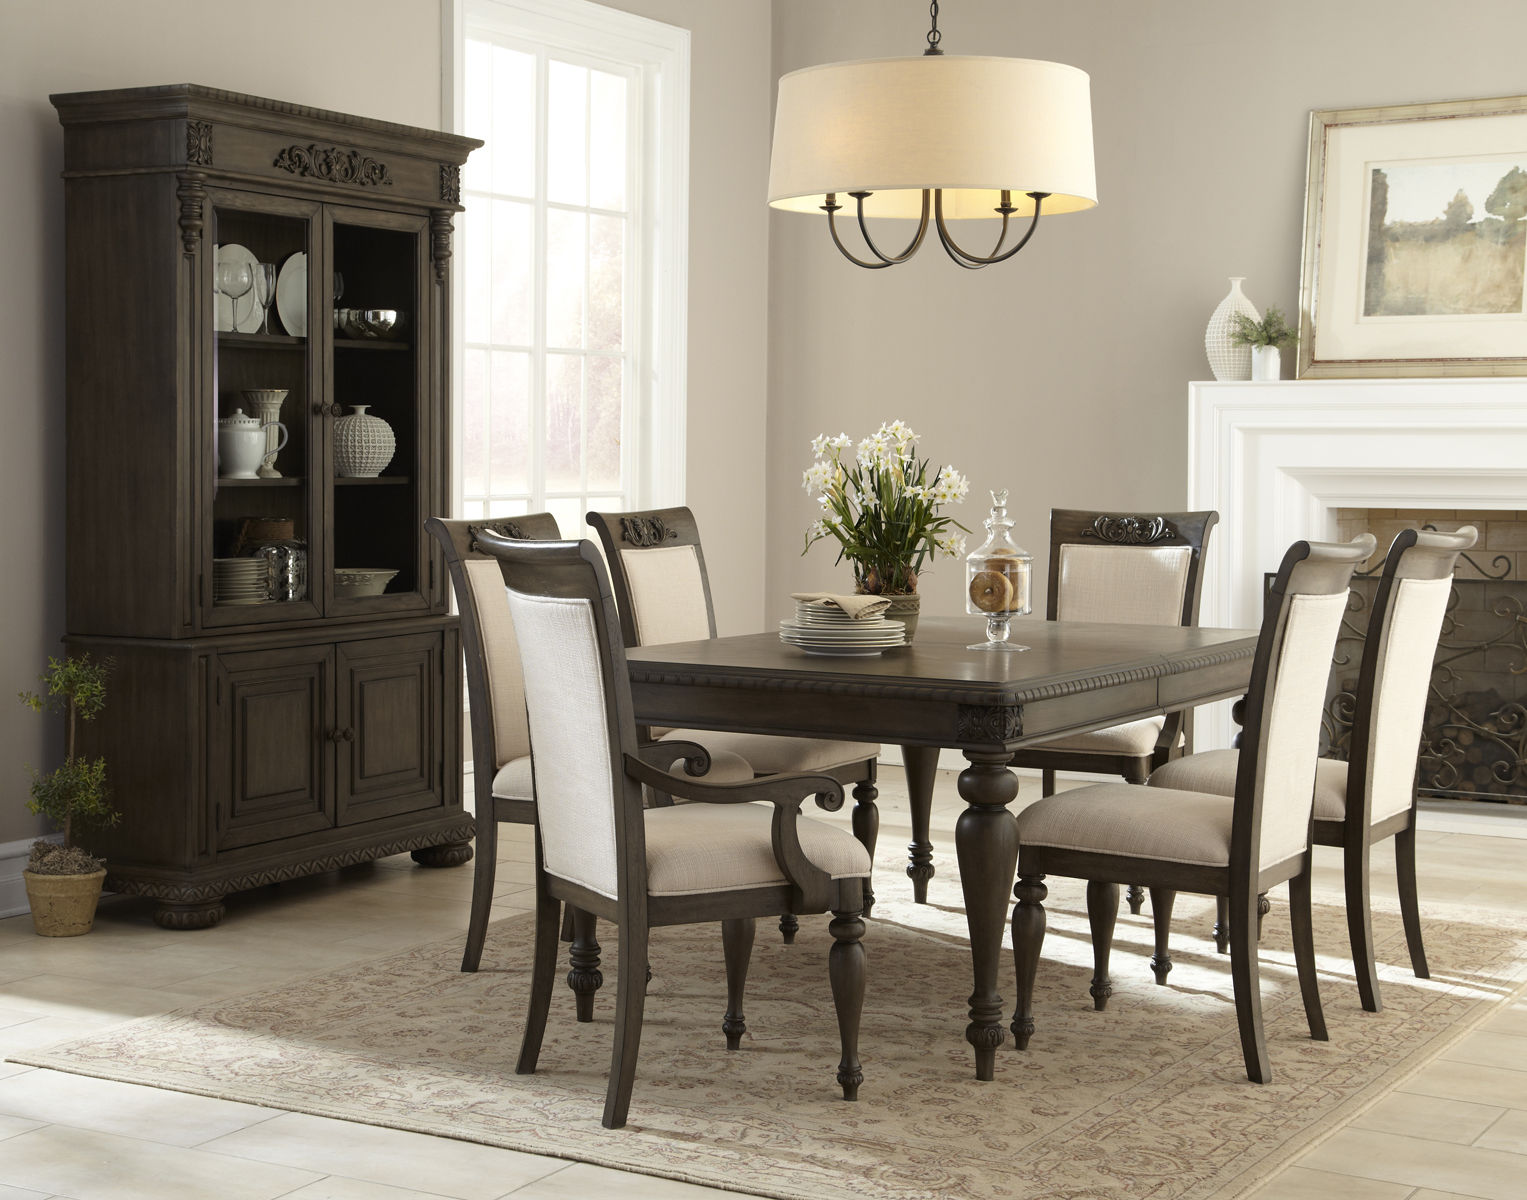 Klaussner Versailles Dining Room Leg Table2 Arm Chairs4 Side Chairs 158500 Hutch Buffet 92500